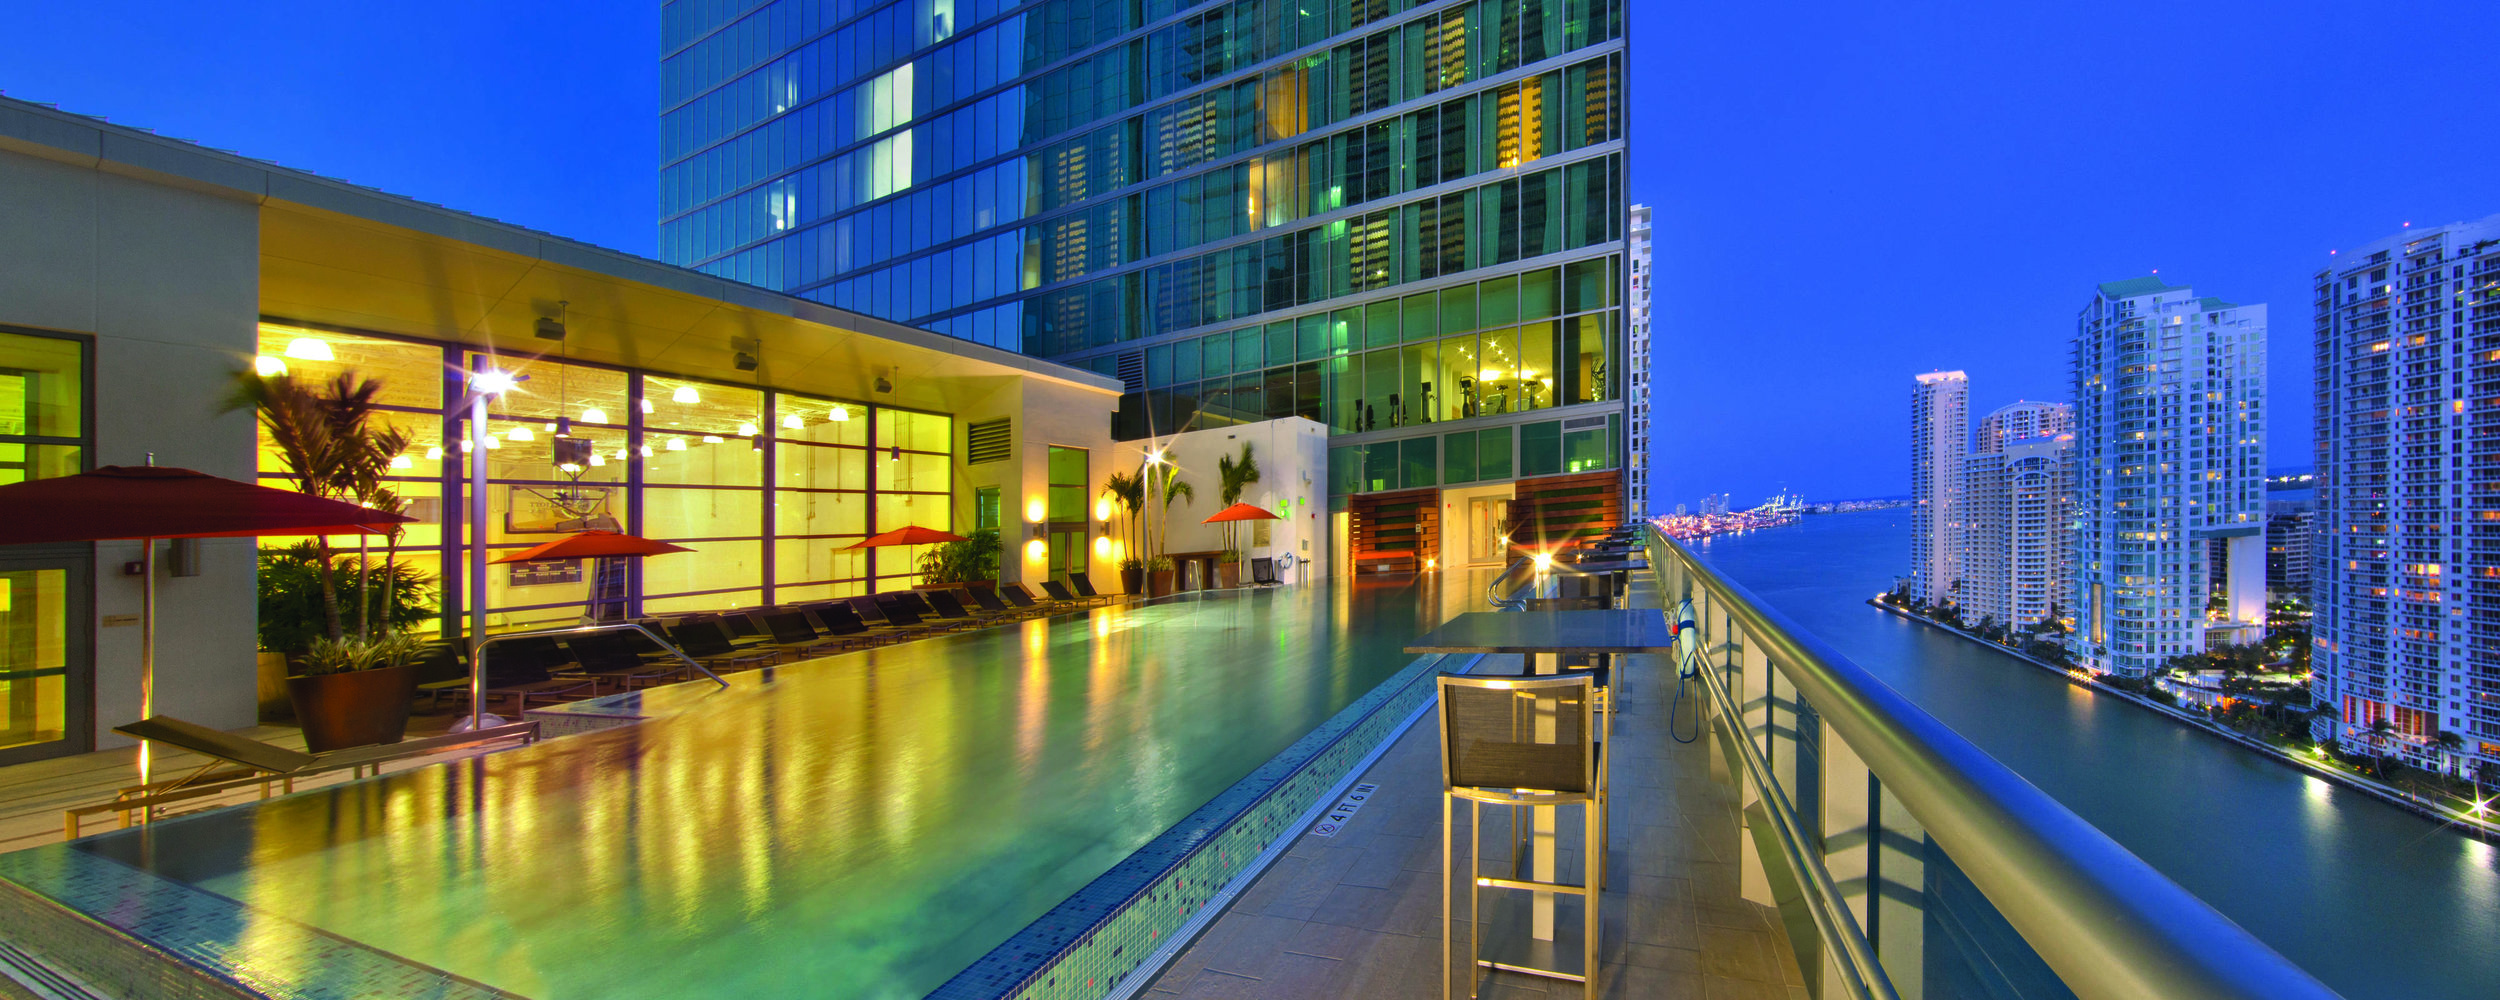 Super Bowl LIVHotel Options - Miami, Florida, USA